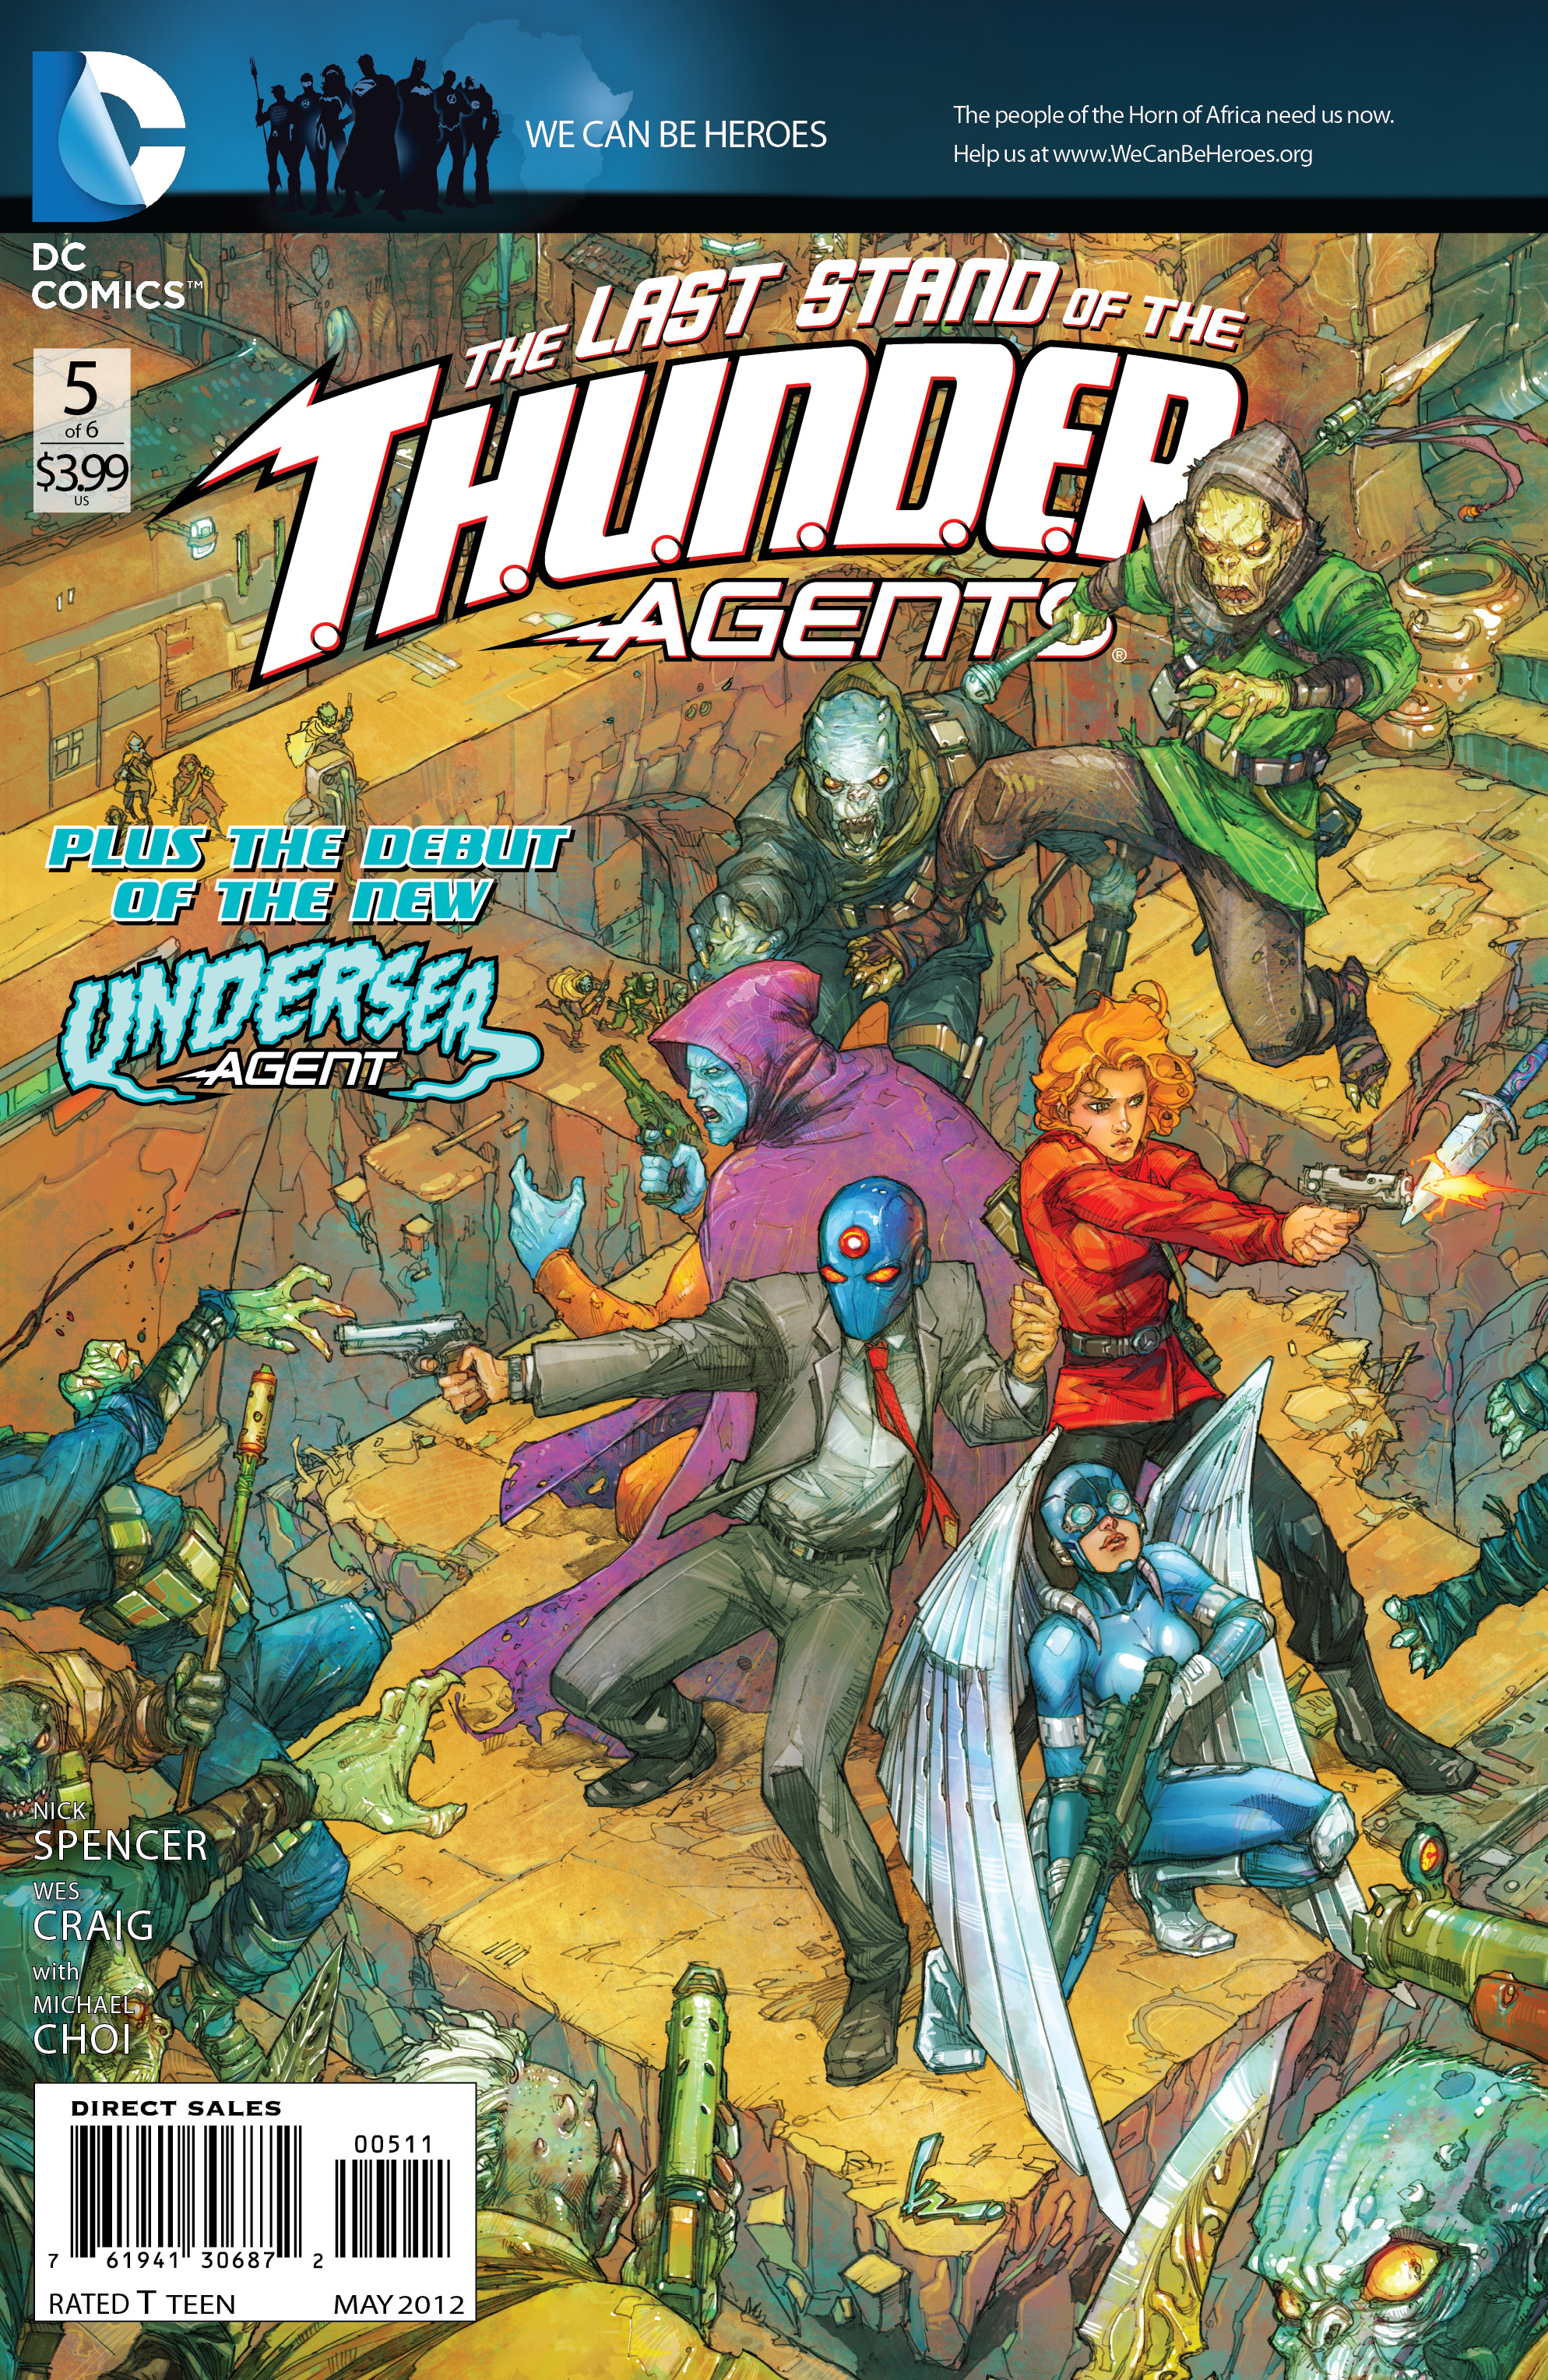 T.H.U.N.D.E.R. Agents #5 Preview goes up